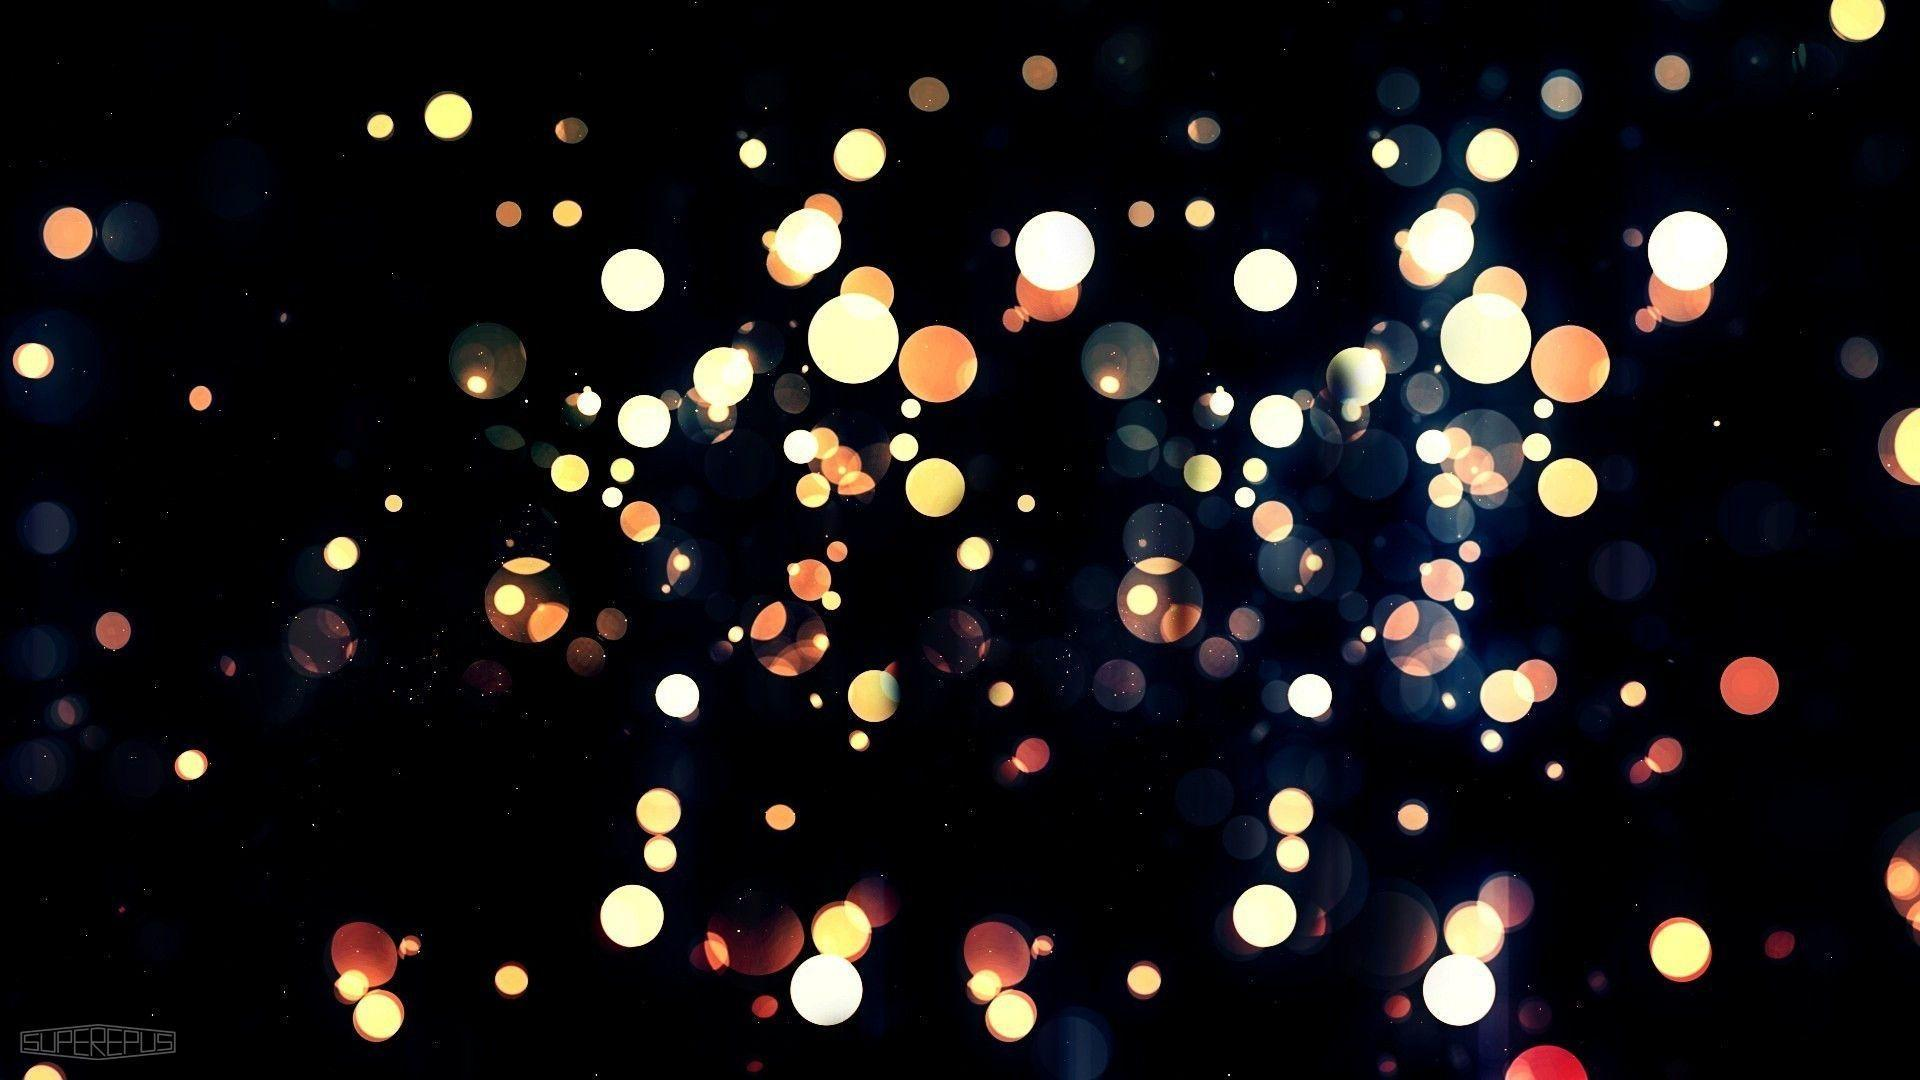 Particles HD Wallpapers, Digital Art Backgrounds